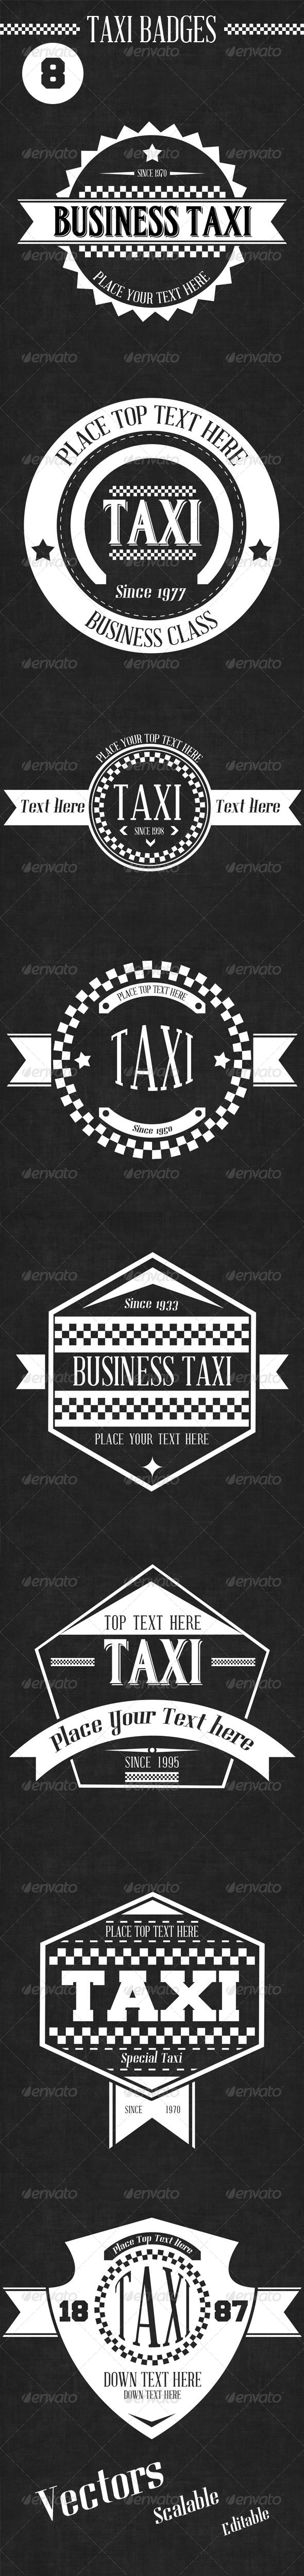 GraphicRiver 8 Retro Taxi Badges 6956622